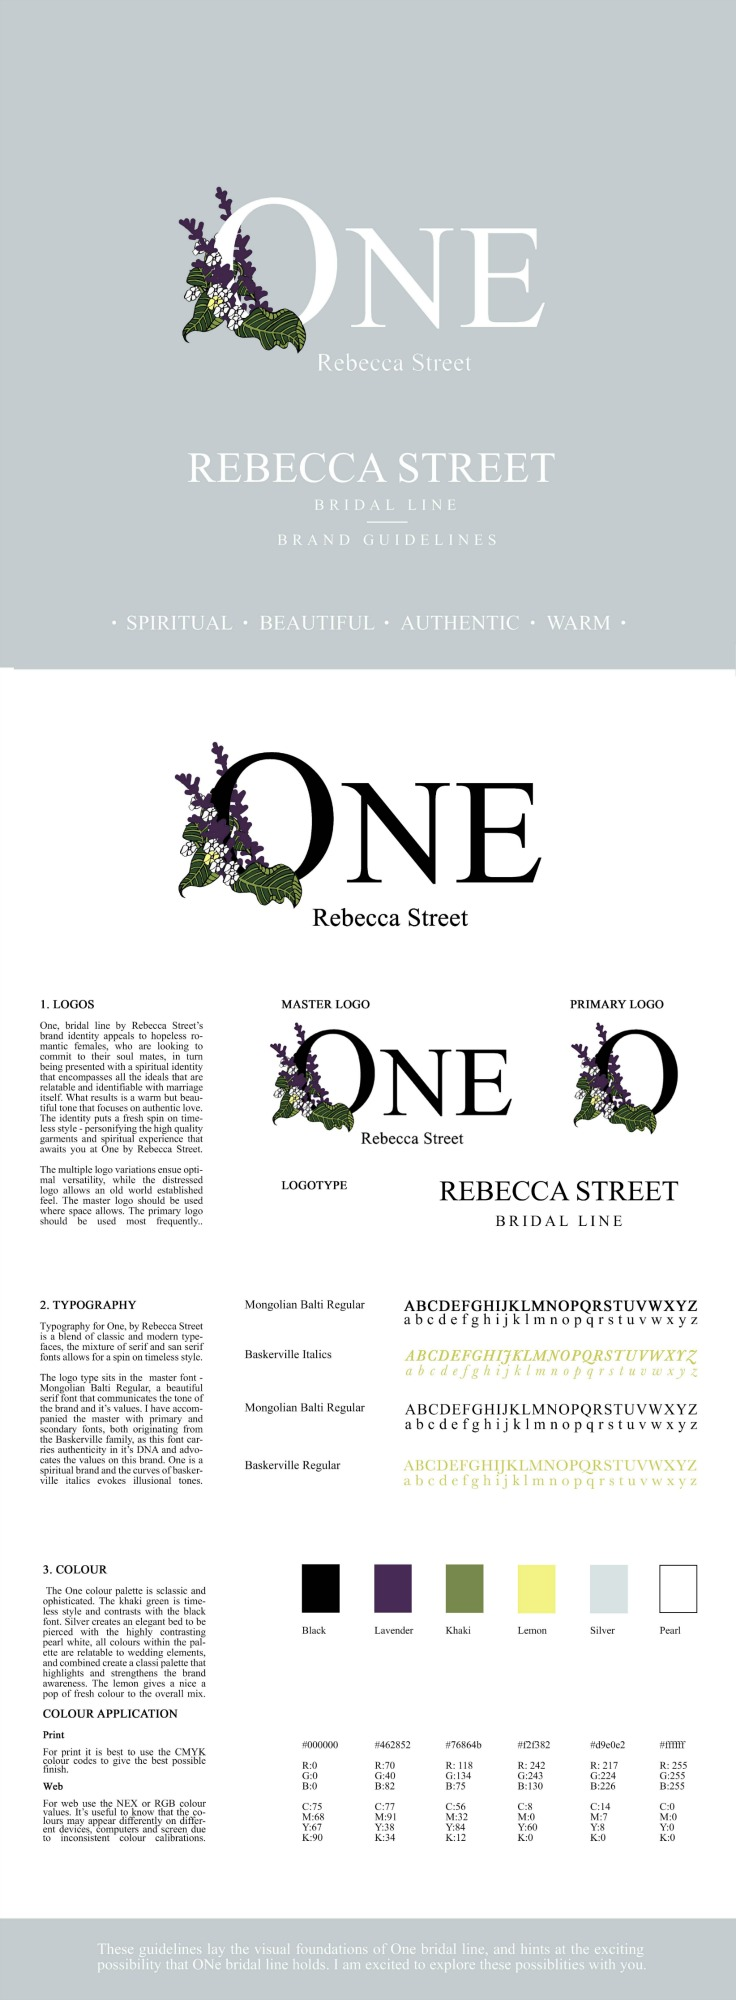 Rebecca Street Brand Identity and Guidelines